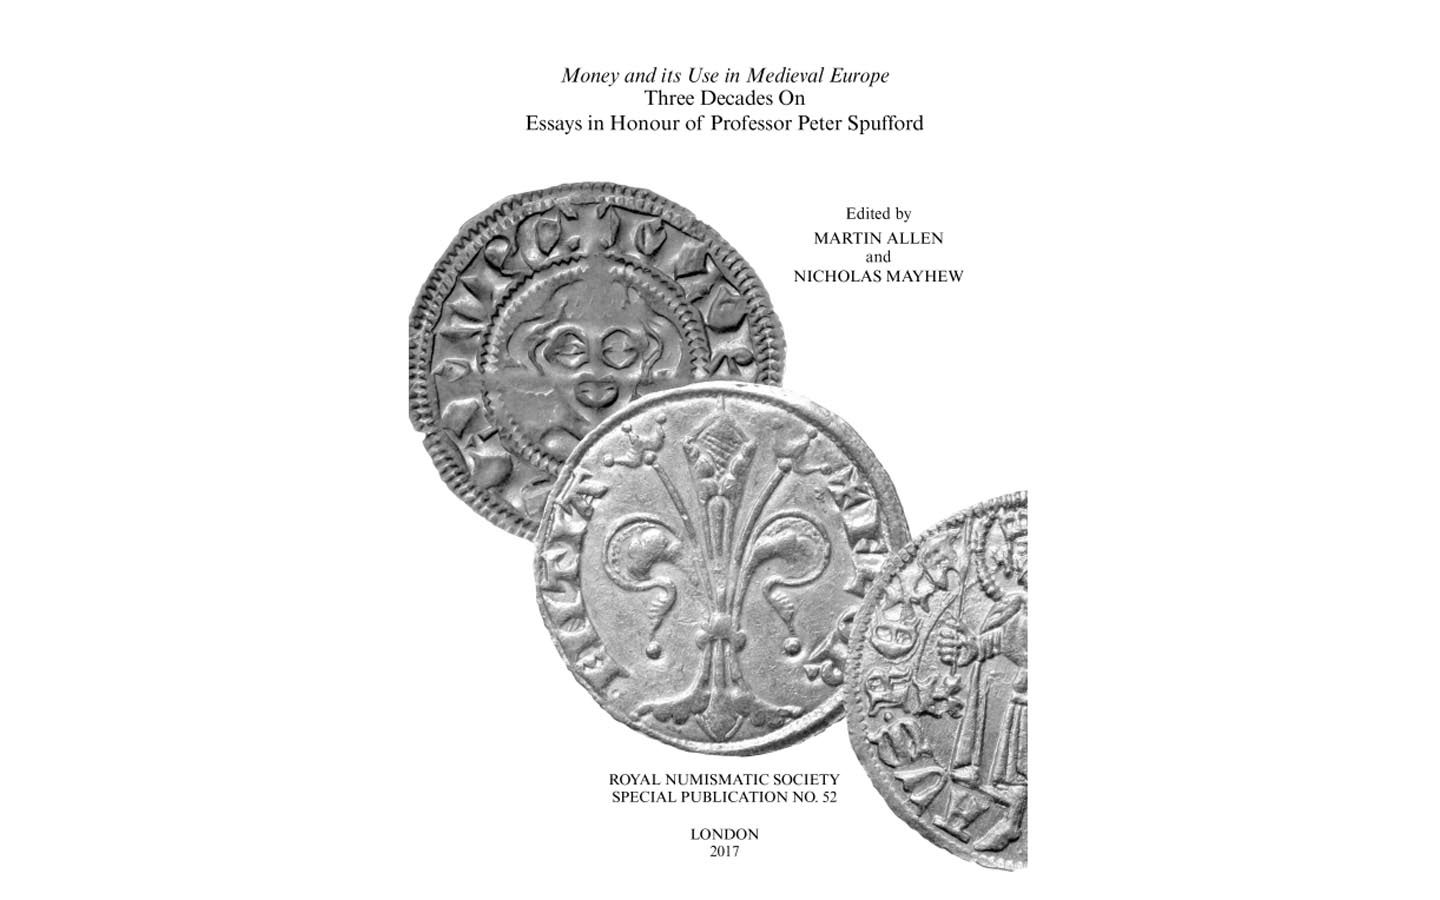 rns announces special publication honouring professor peter  the royal numismatic society announces a special publication of a collection of essays honoring professor spufford in the book money and its use in medieval